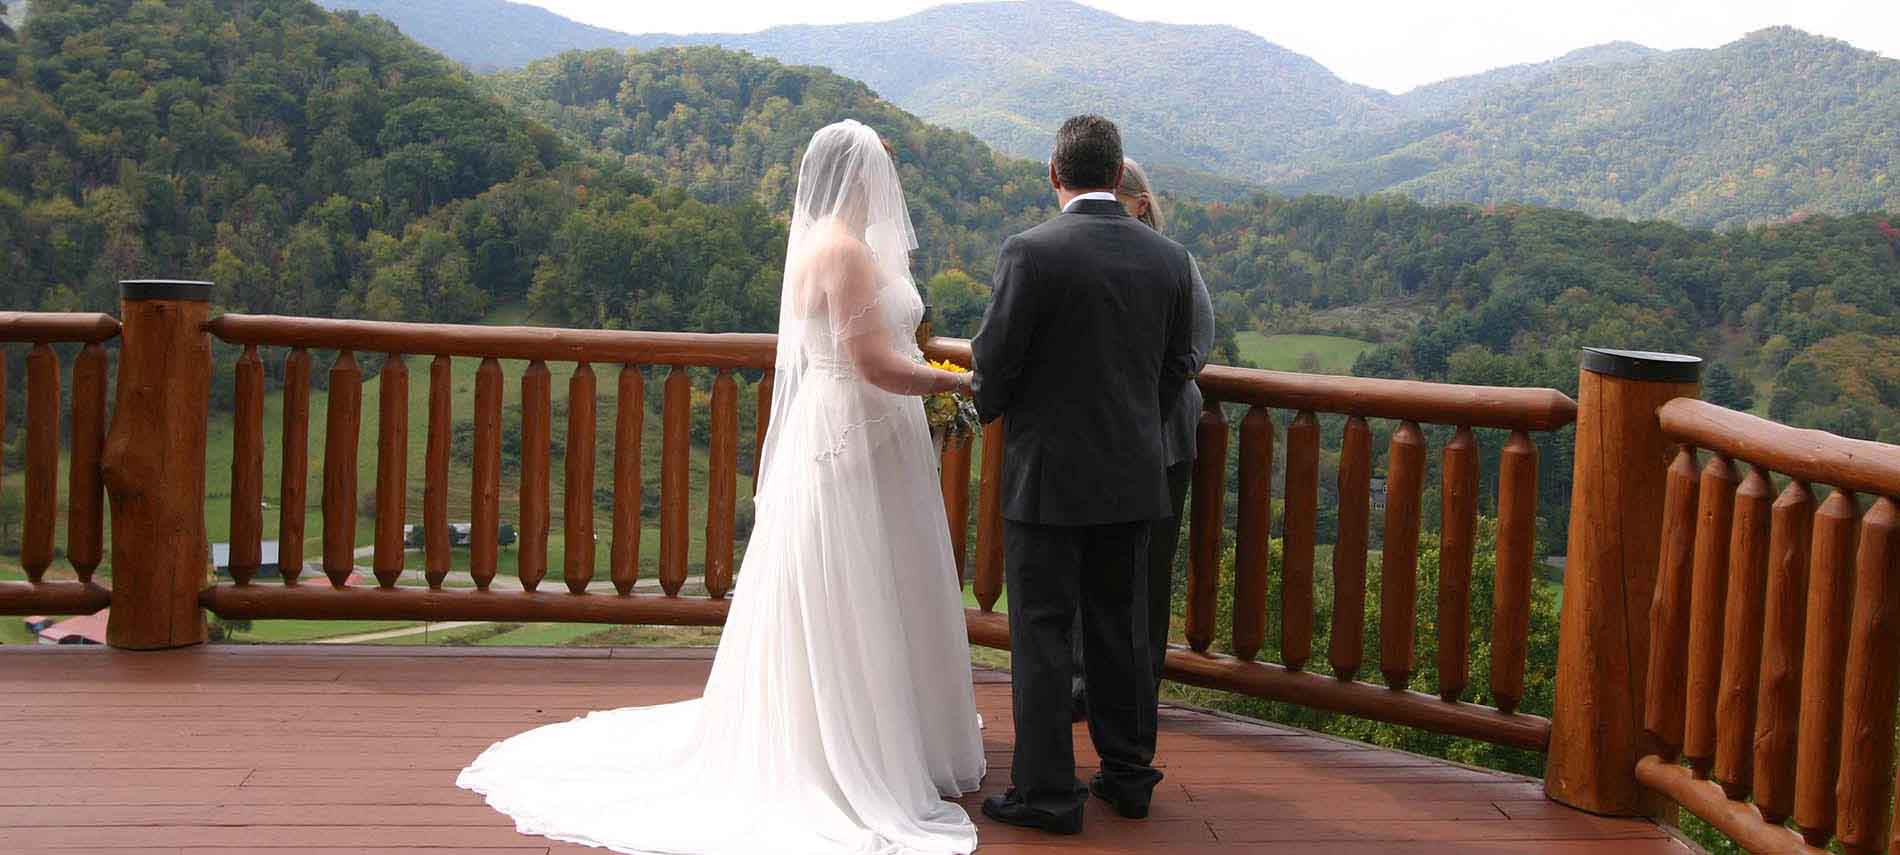 Wedding Couple with Minister on the back deck overlooking the mountains, Her wedding dress pops out in front of the Mountains Greens